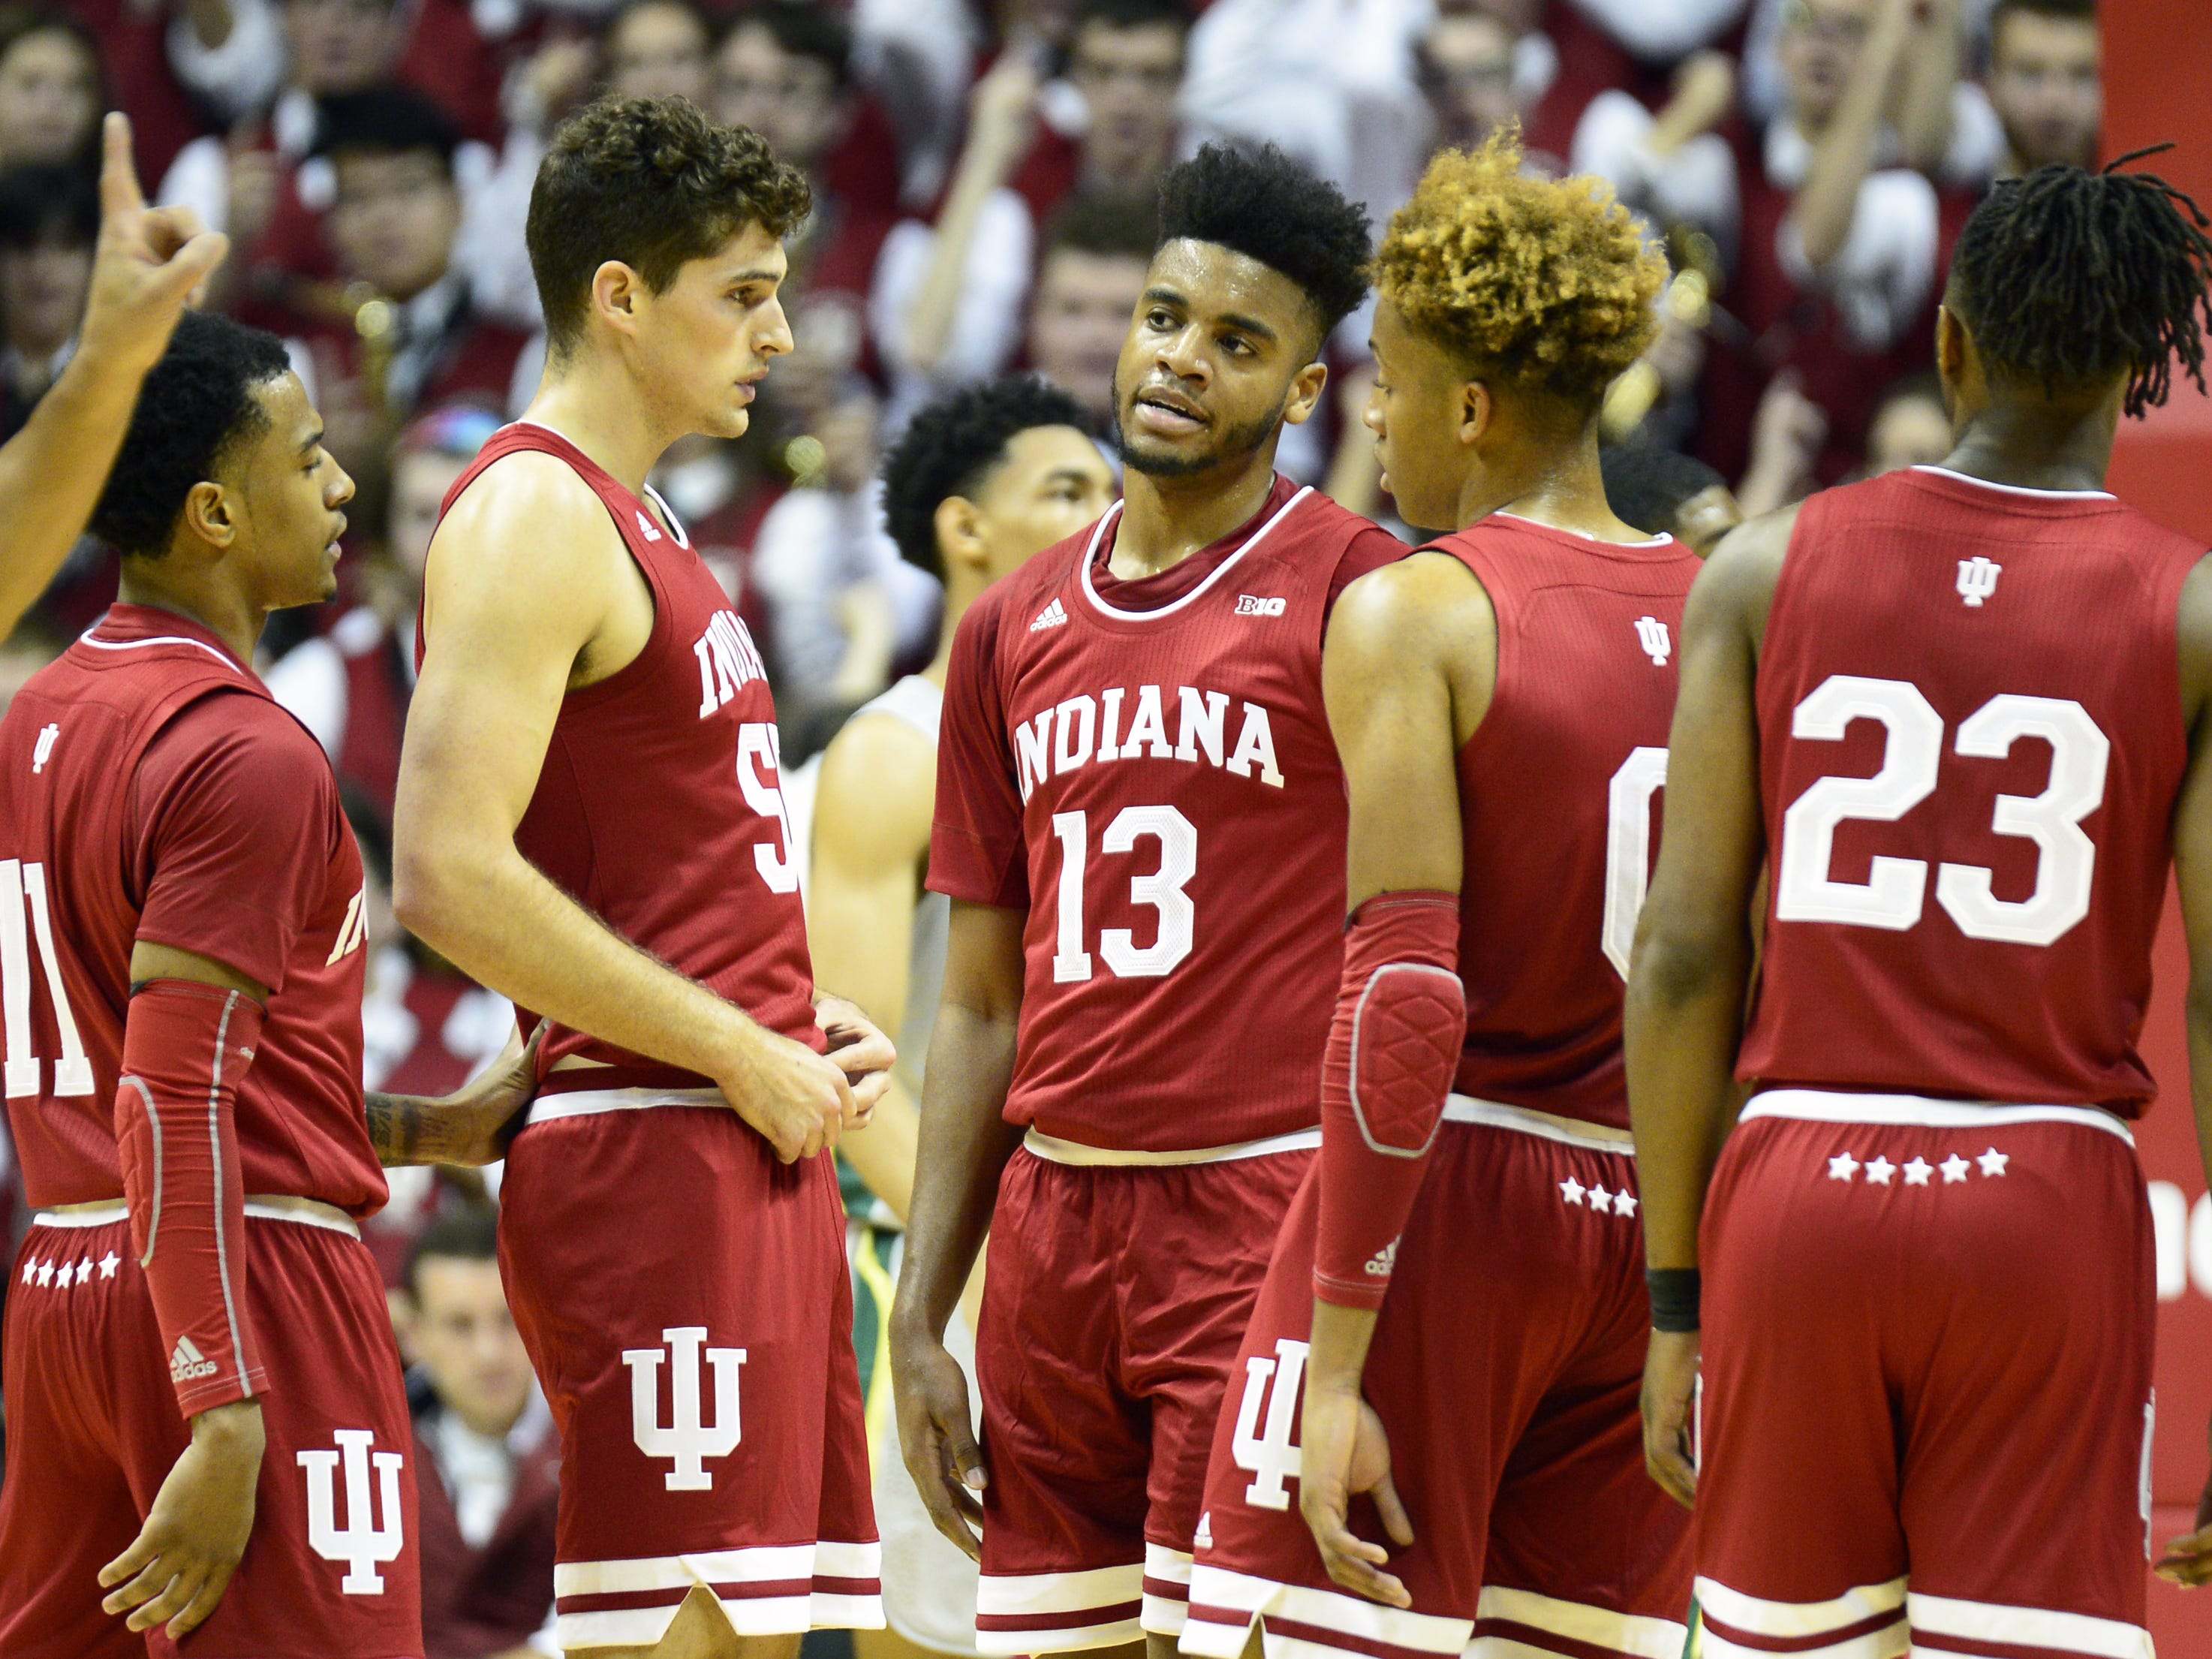 Juwan Morgan (13) and IU basketball teammates gather during action against Chicago State on Nov. 6, 2018.